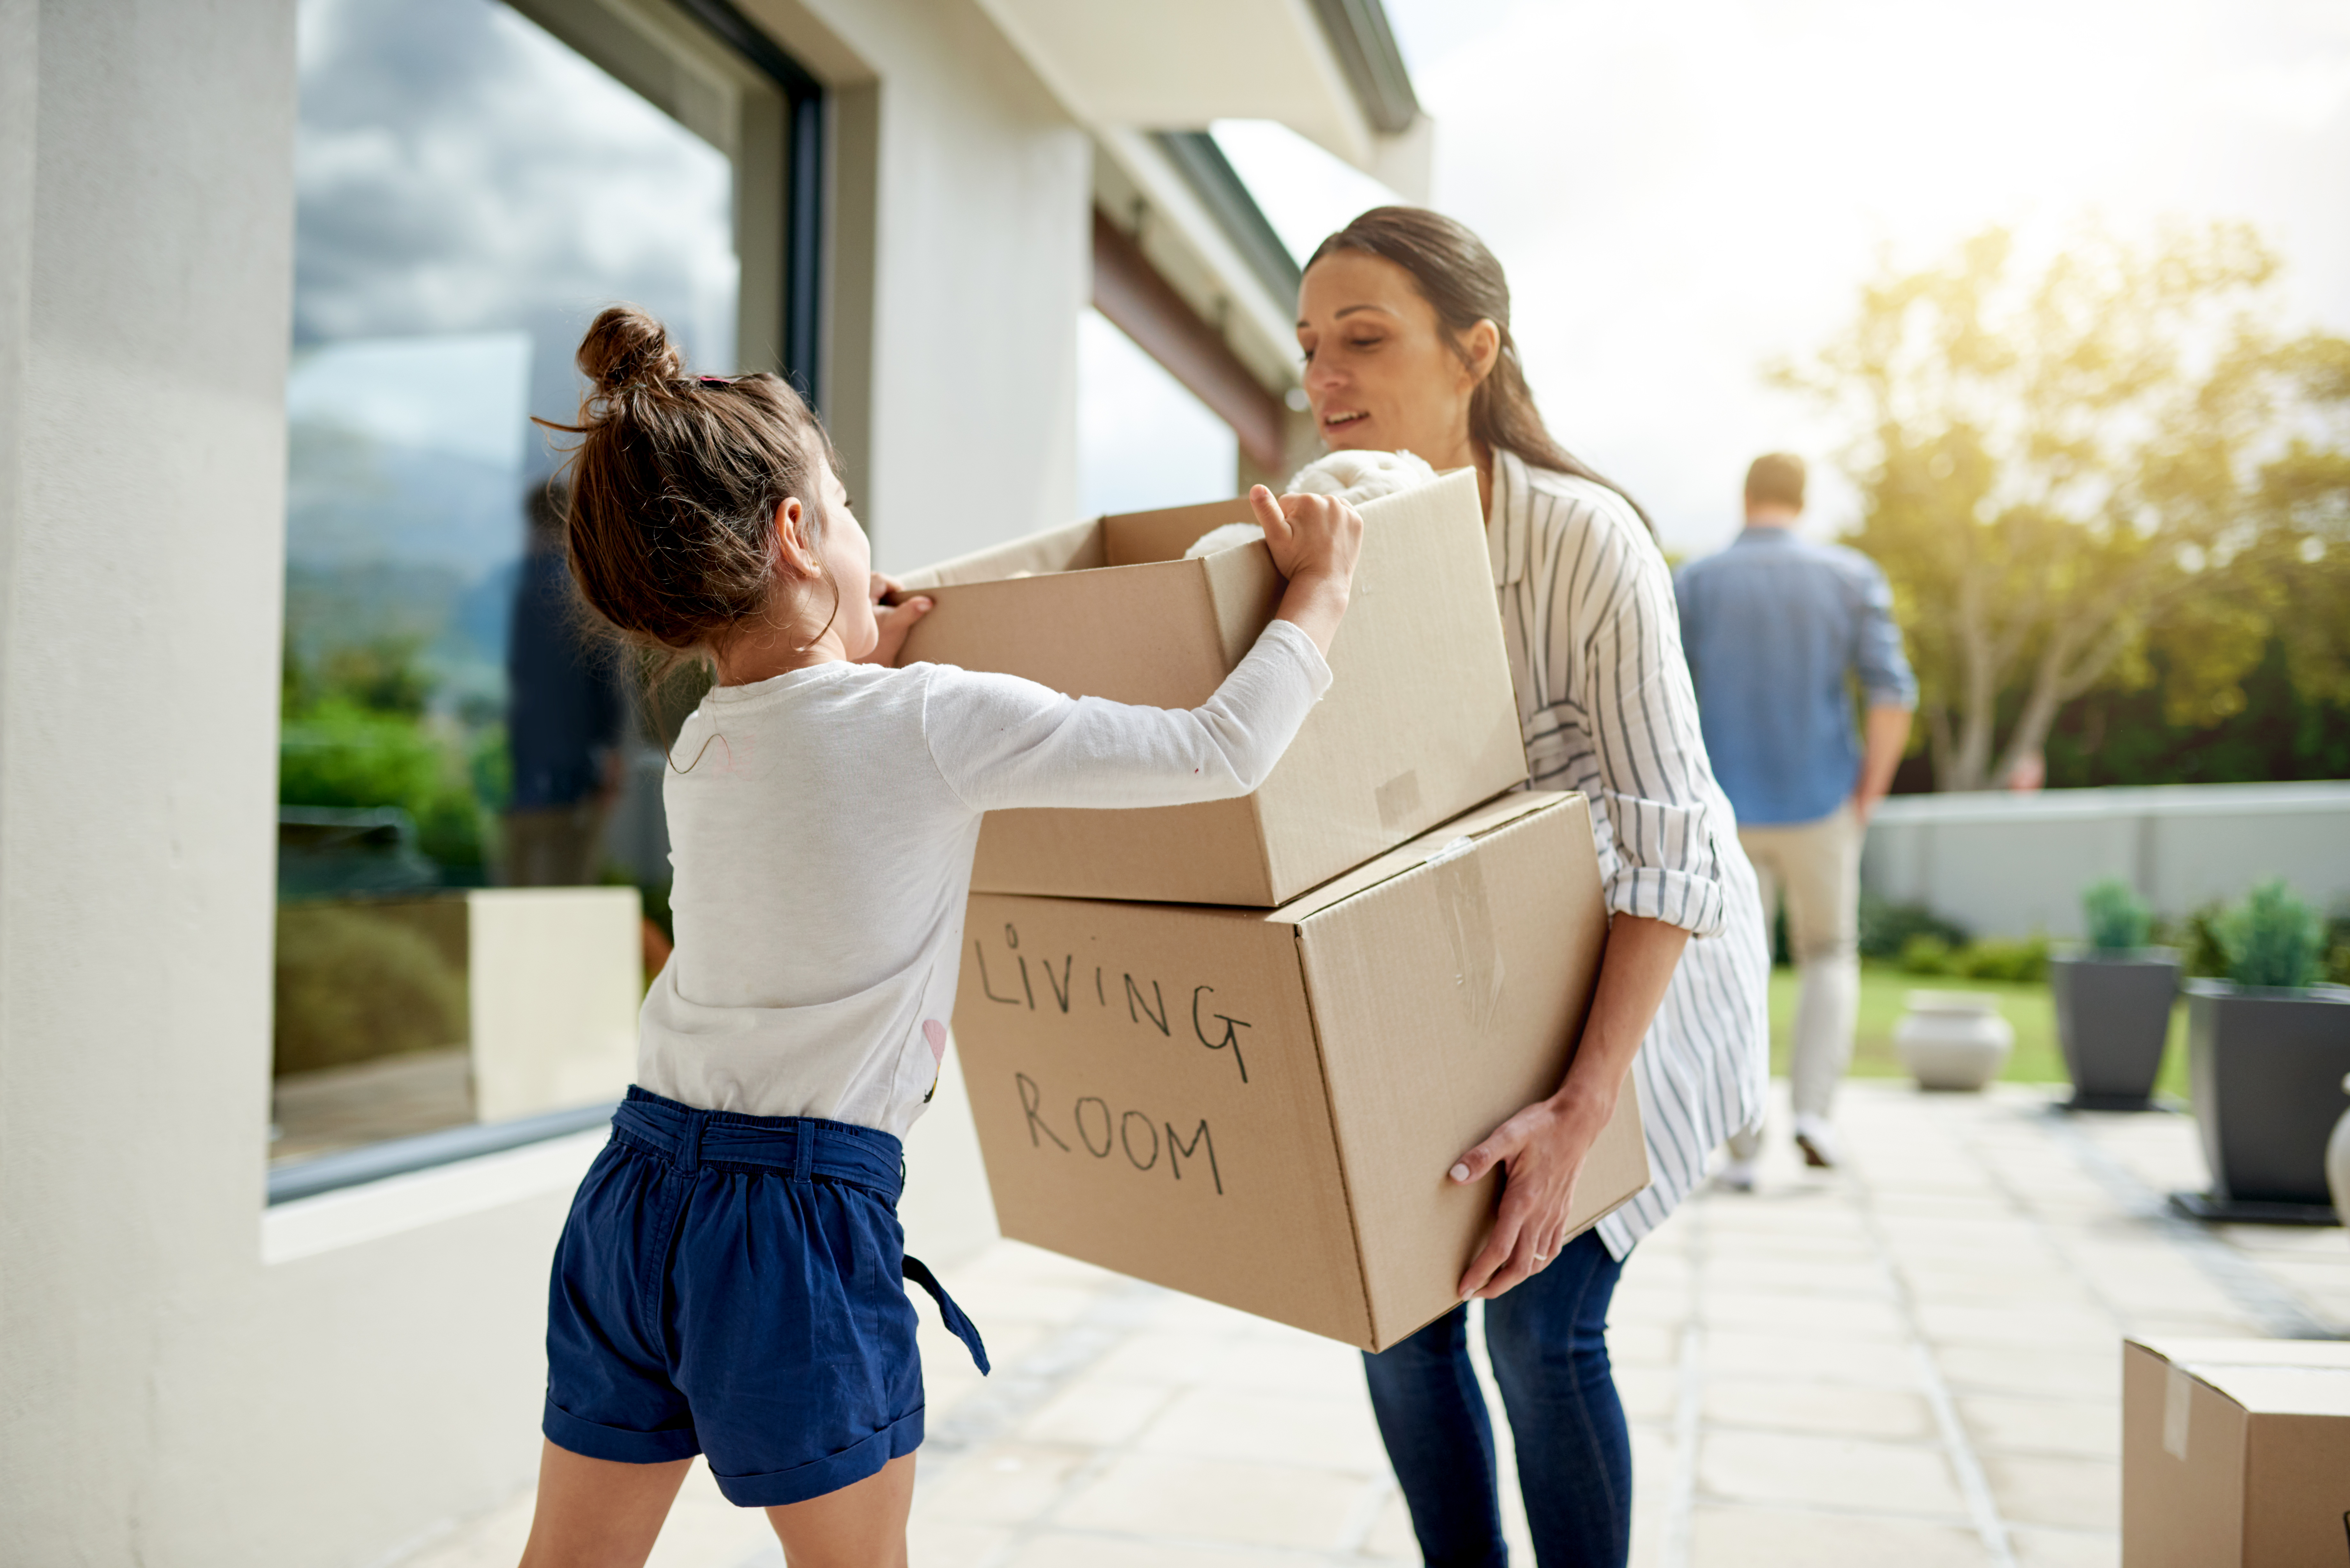 Consequences for the Removal of a Tenant's Belongings